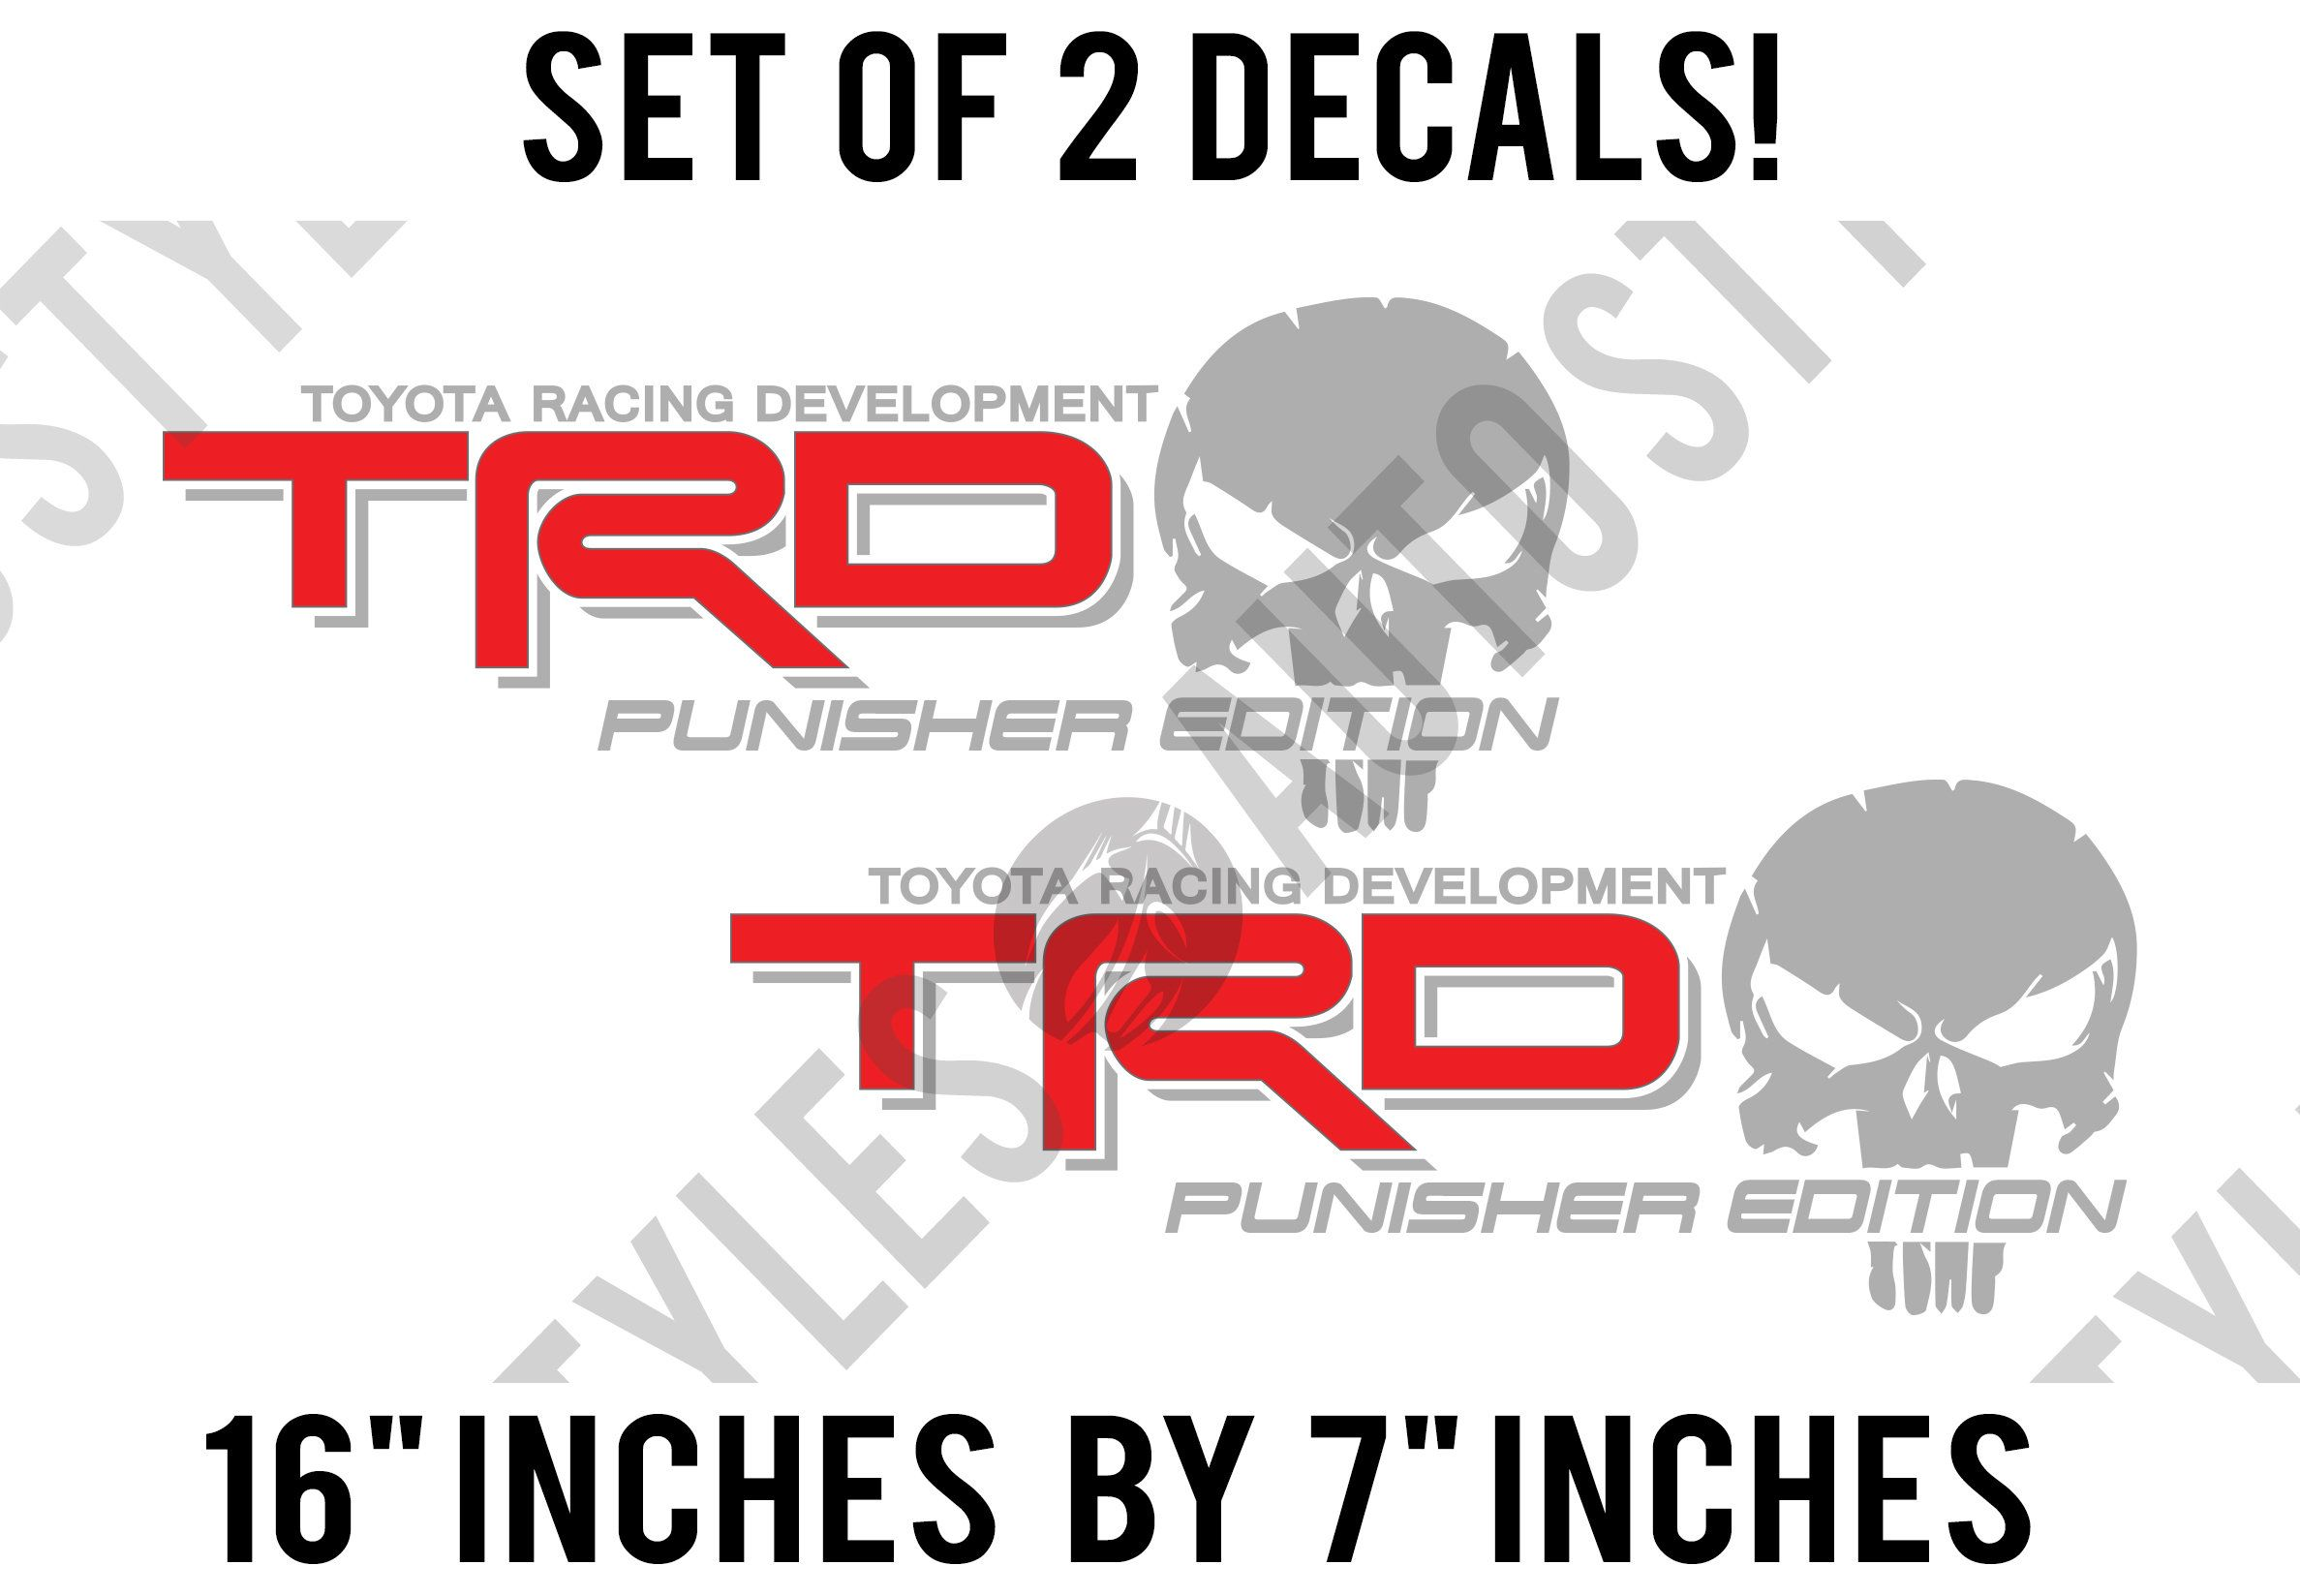 Punisher Edition Skull Toyota TRD fits Tacoma Tundra PAIR of Sticker Decals